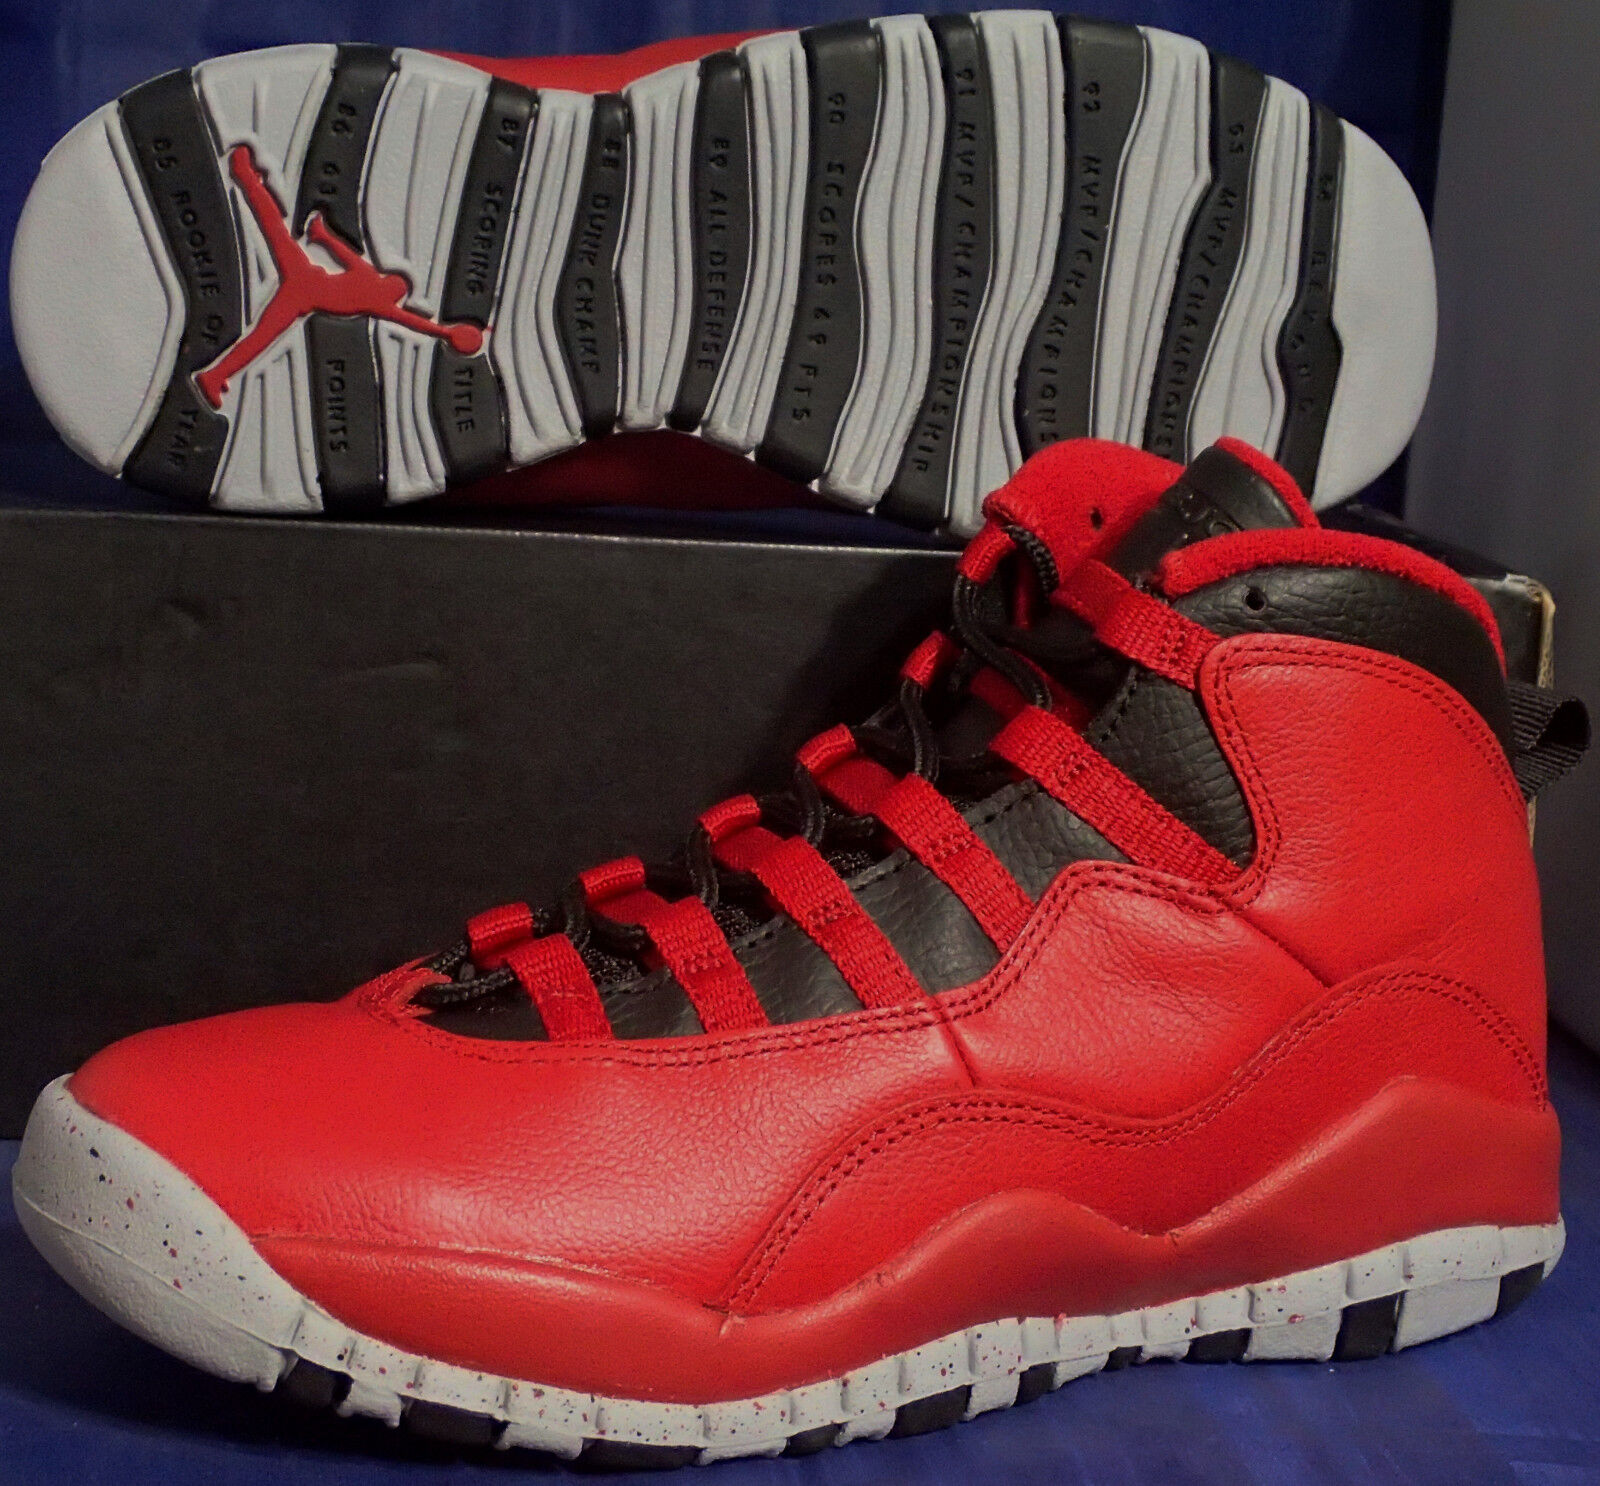 Nike Air Jordan 10 X Retro 9.5 Bulls Over Broadway SZ 9.5 Retro ( 705178-601 ) c99a5f